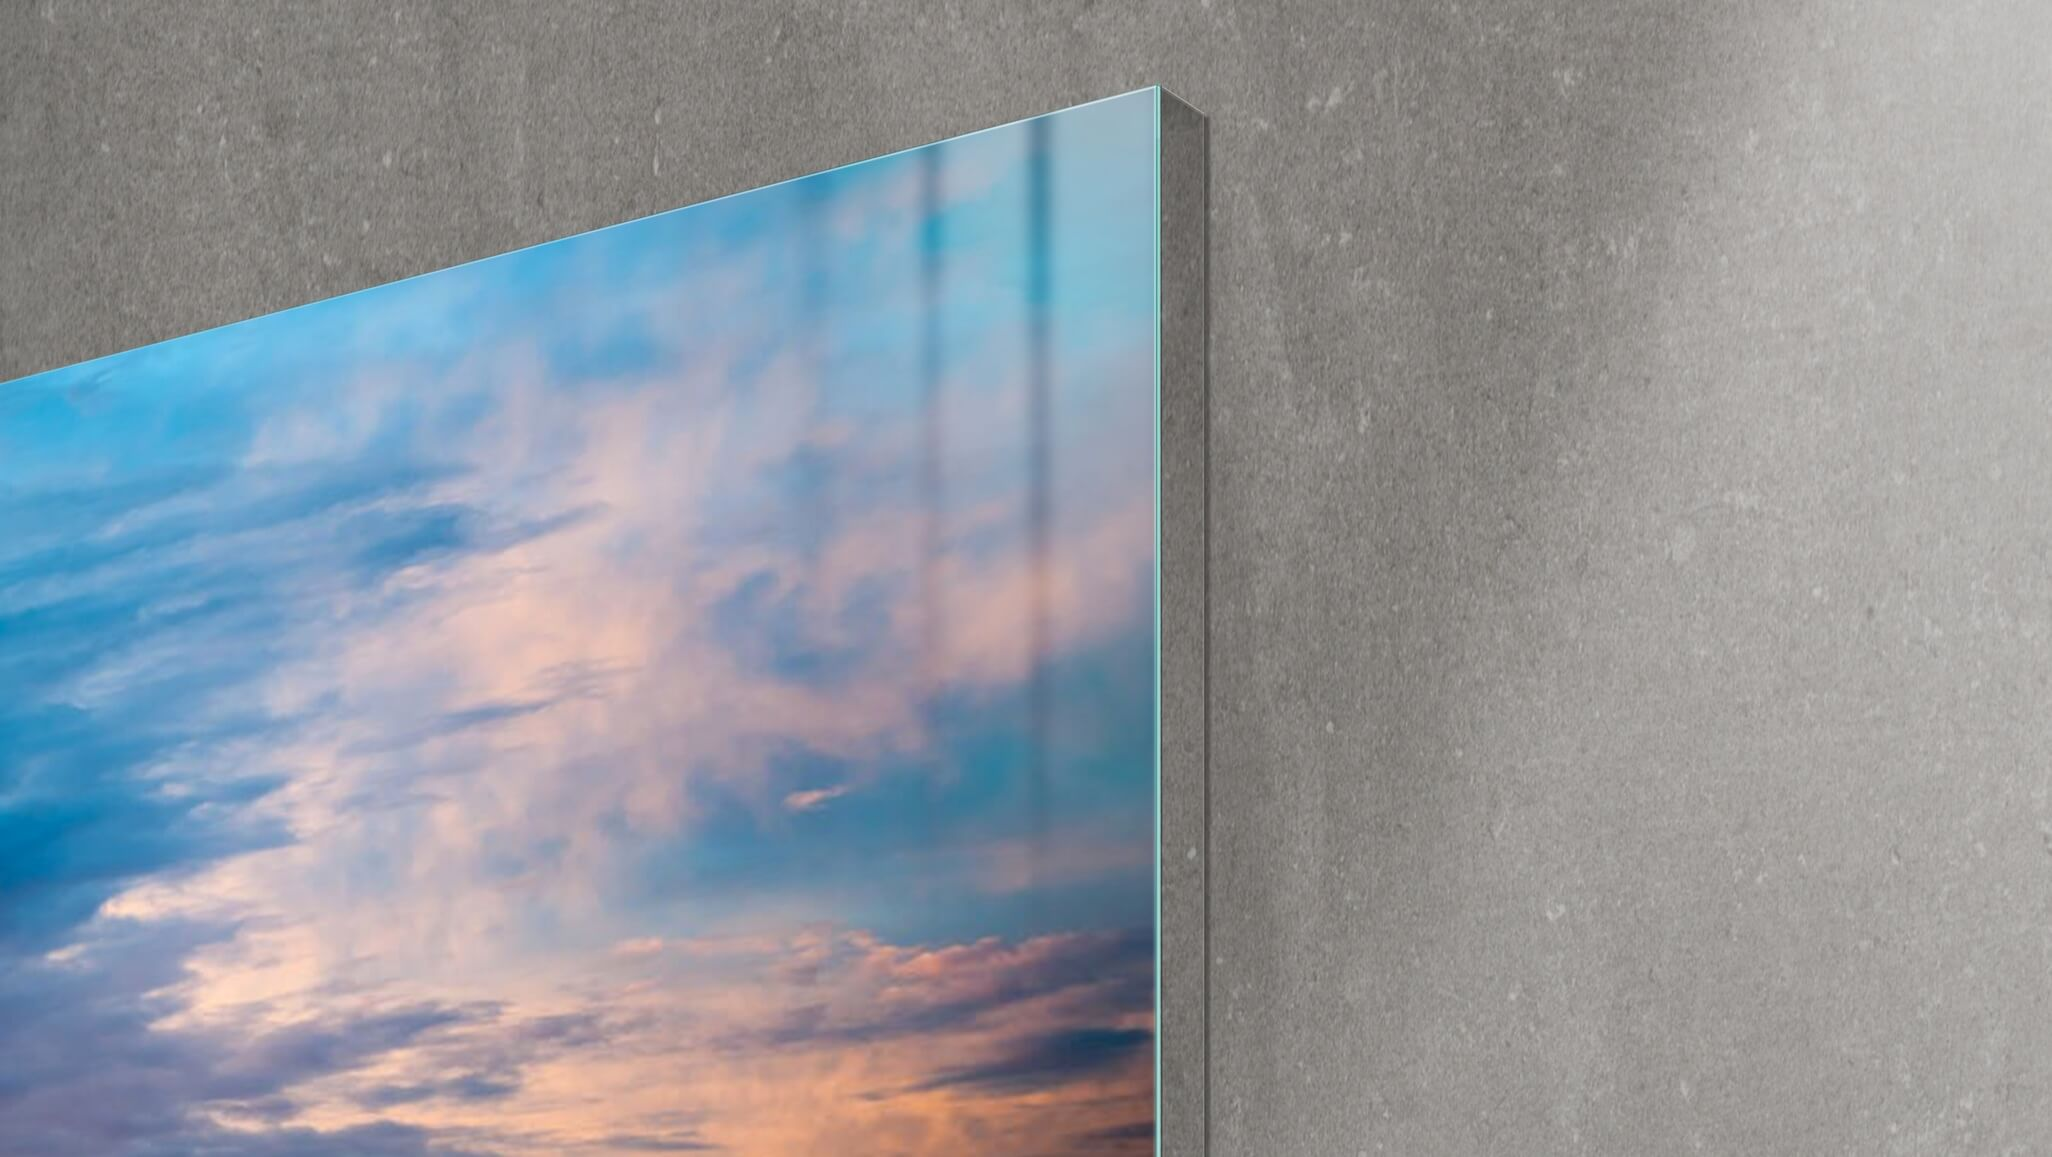 Samsung presents 146-inch modular MicroLED TV aptly called